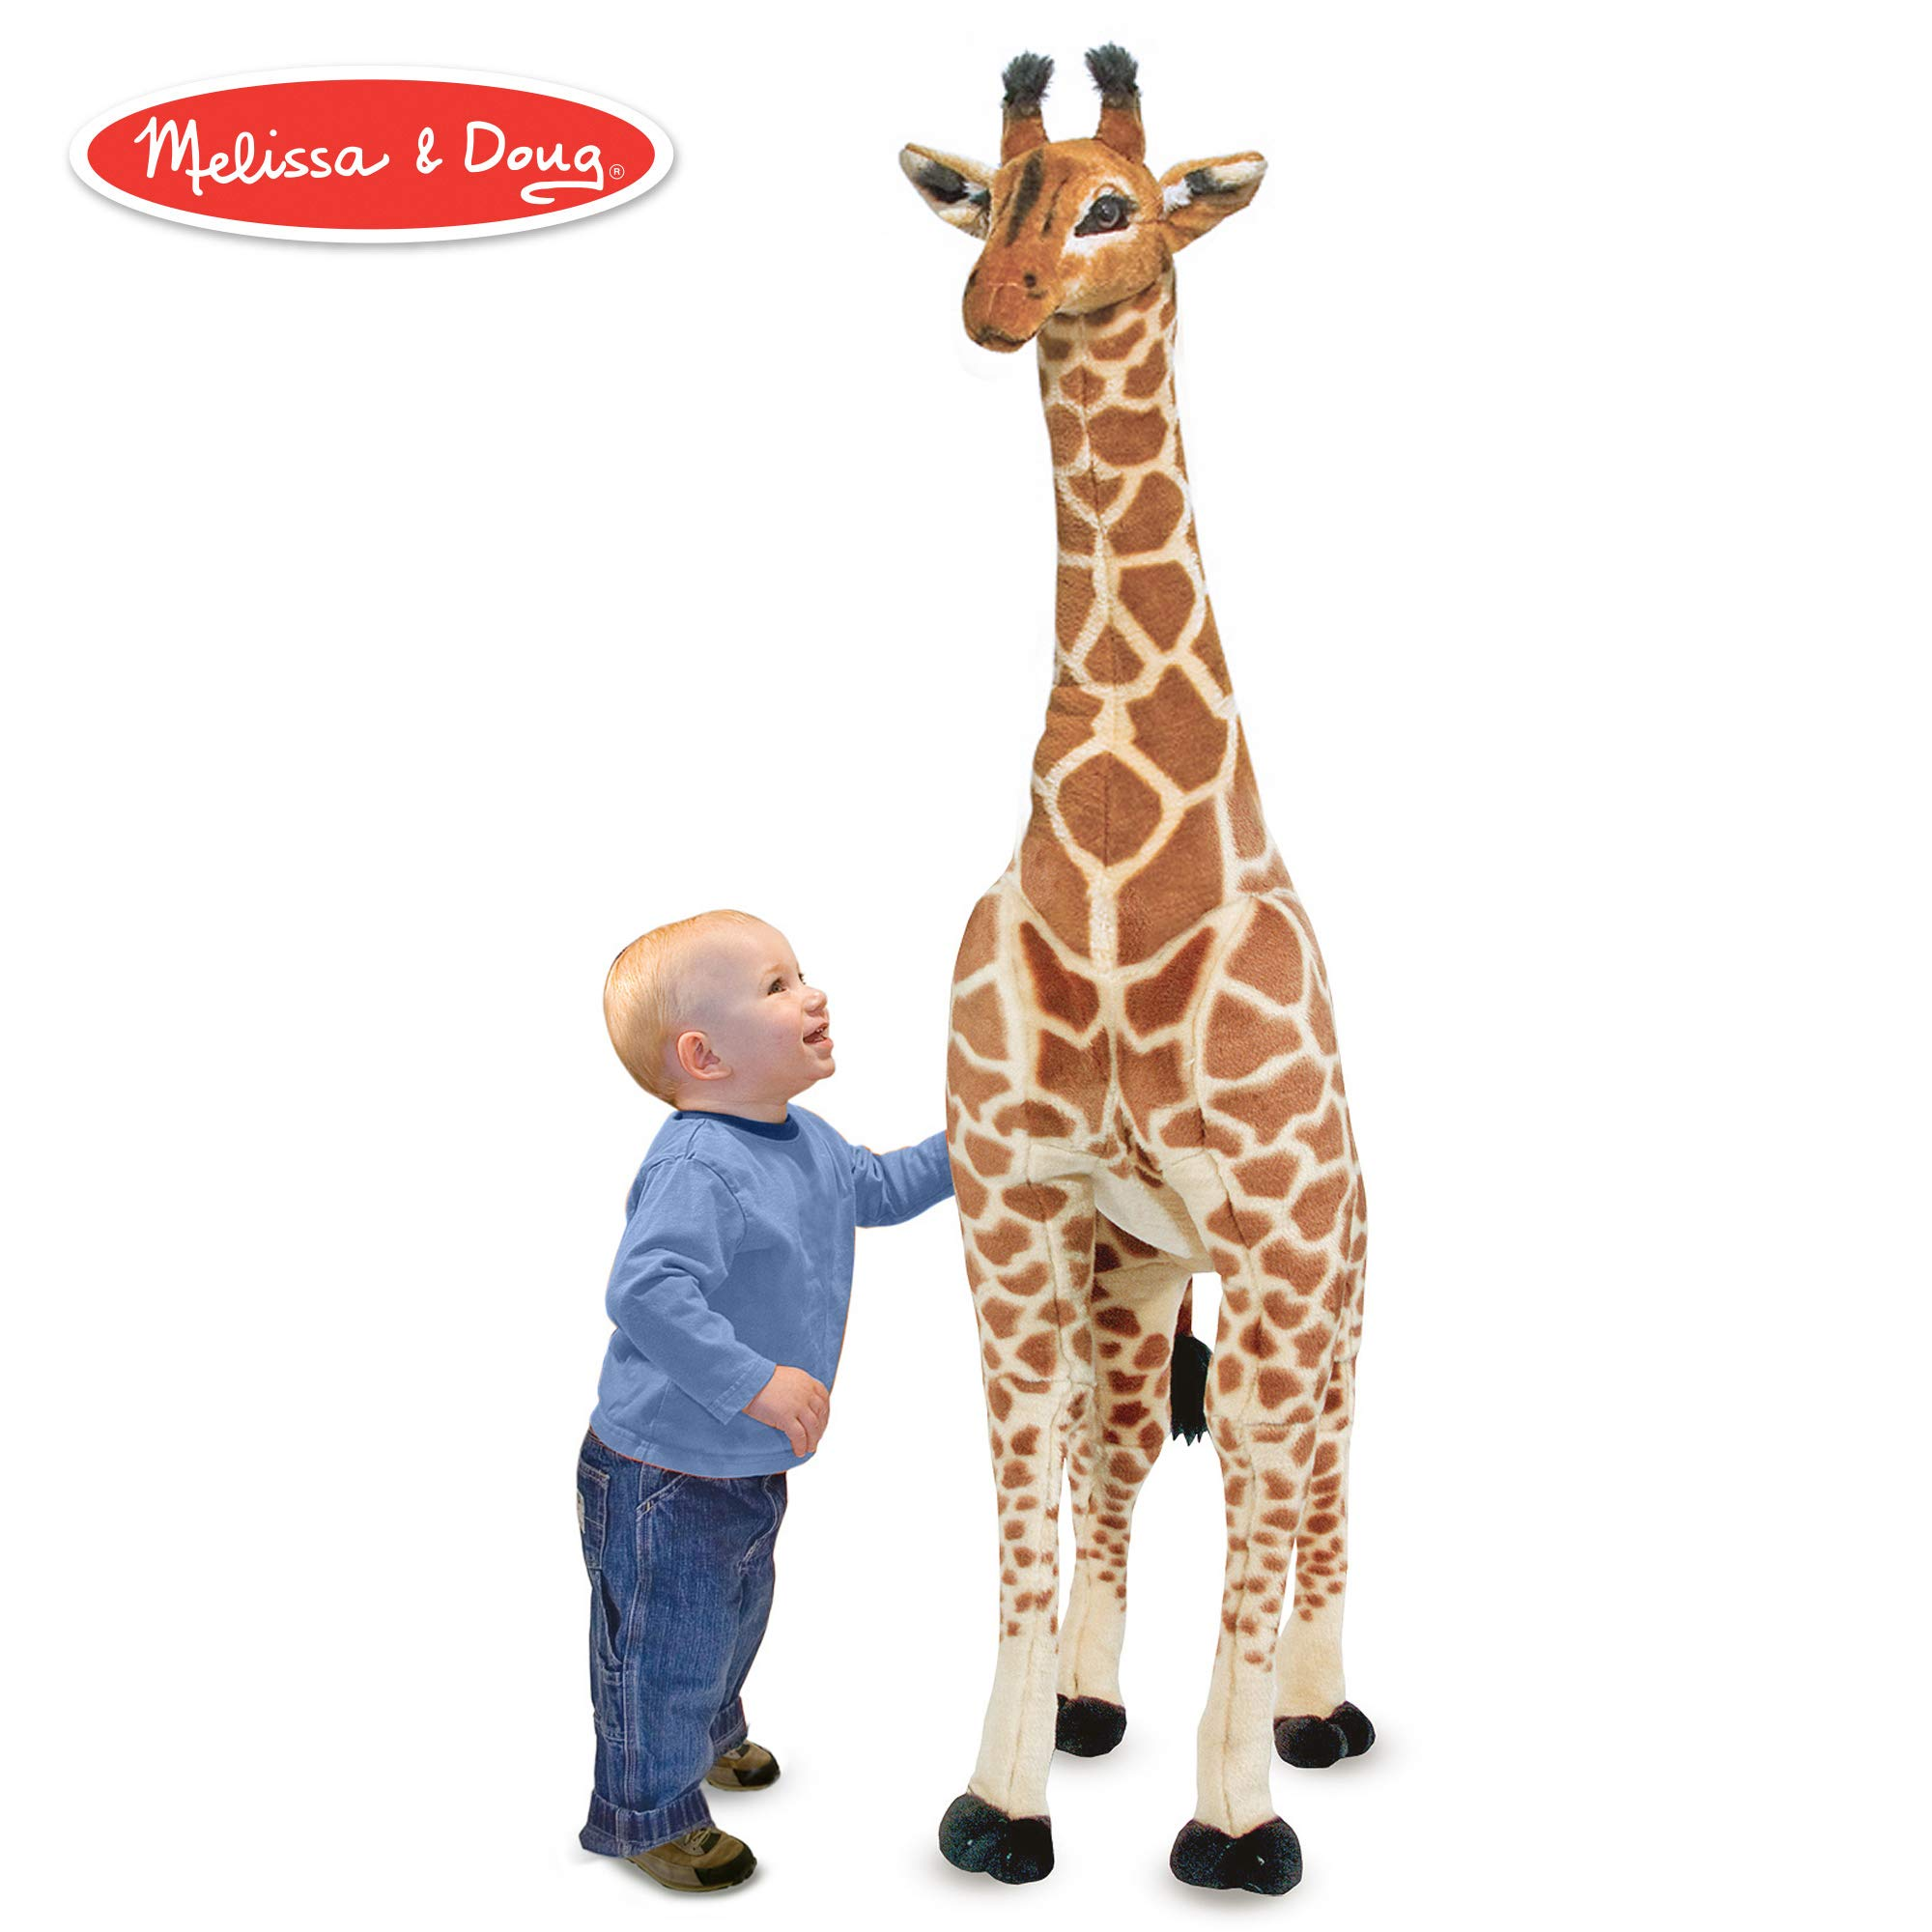 Melissa & Doug Giant Giraffe (Playspaces & Room Decor, Lifelike Stuffed Animal, Soft Fabric, Over 4 Feet Tall) by Melissa & Doug